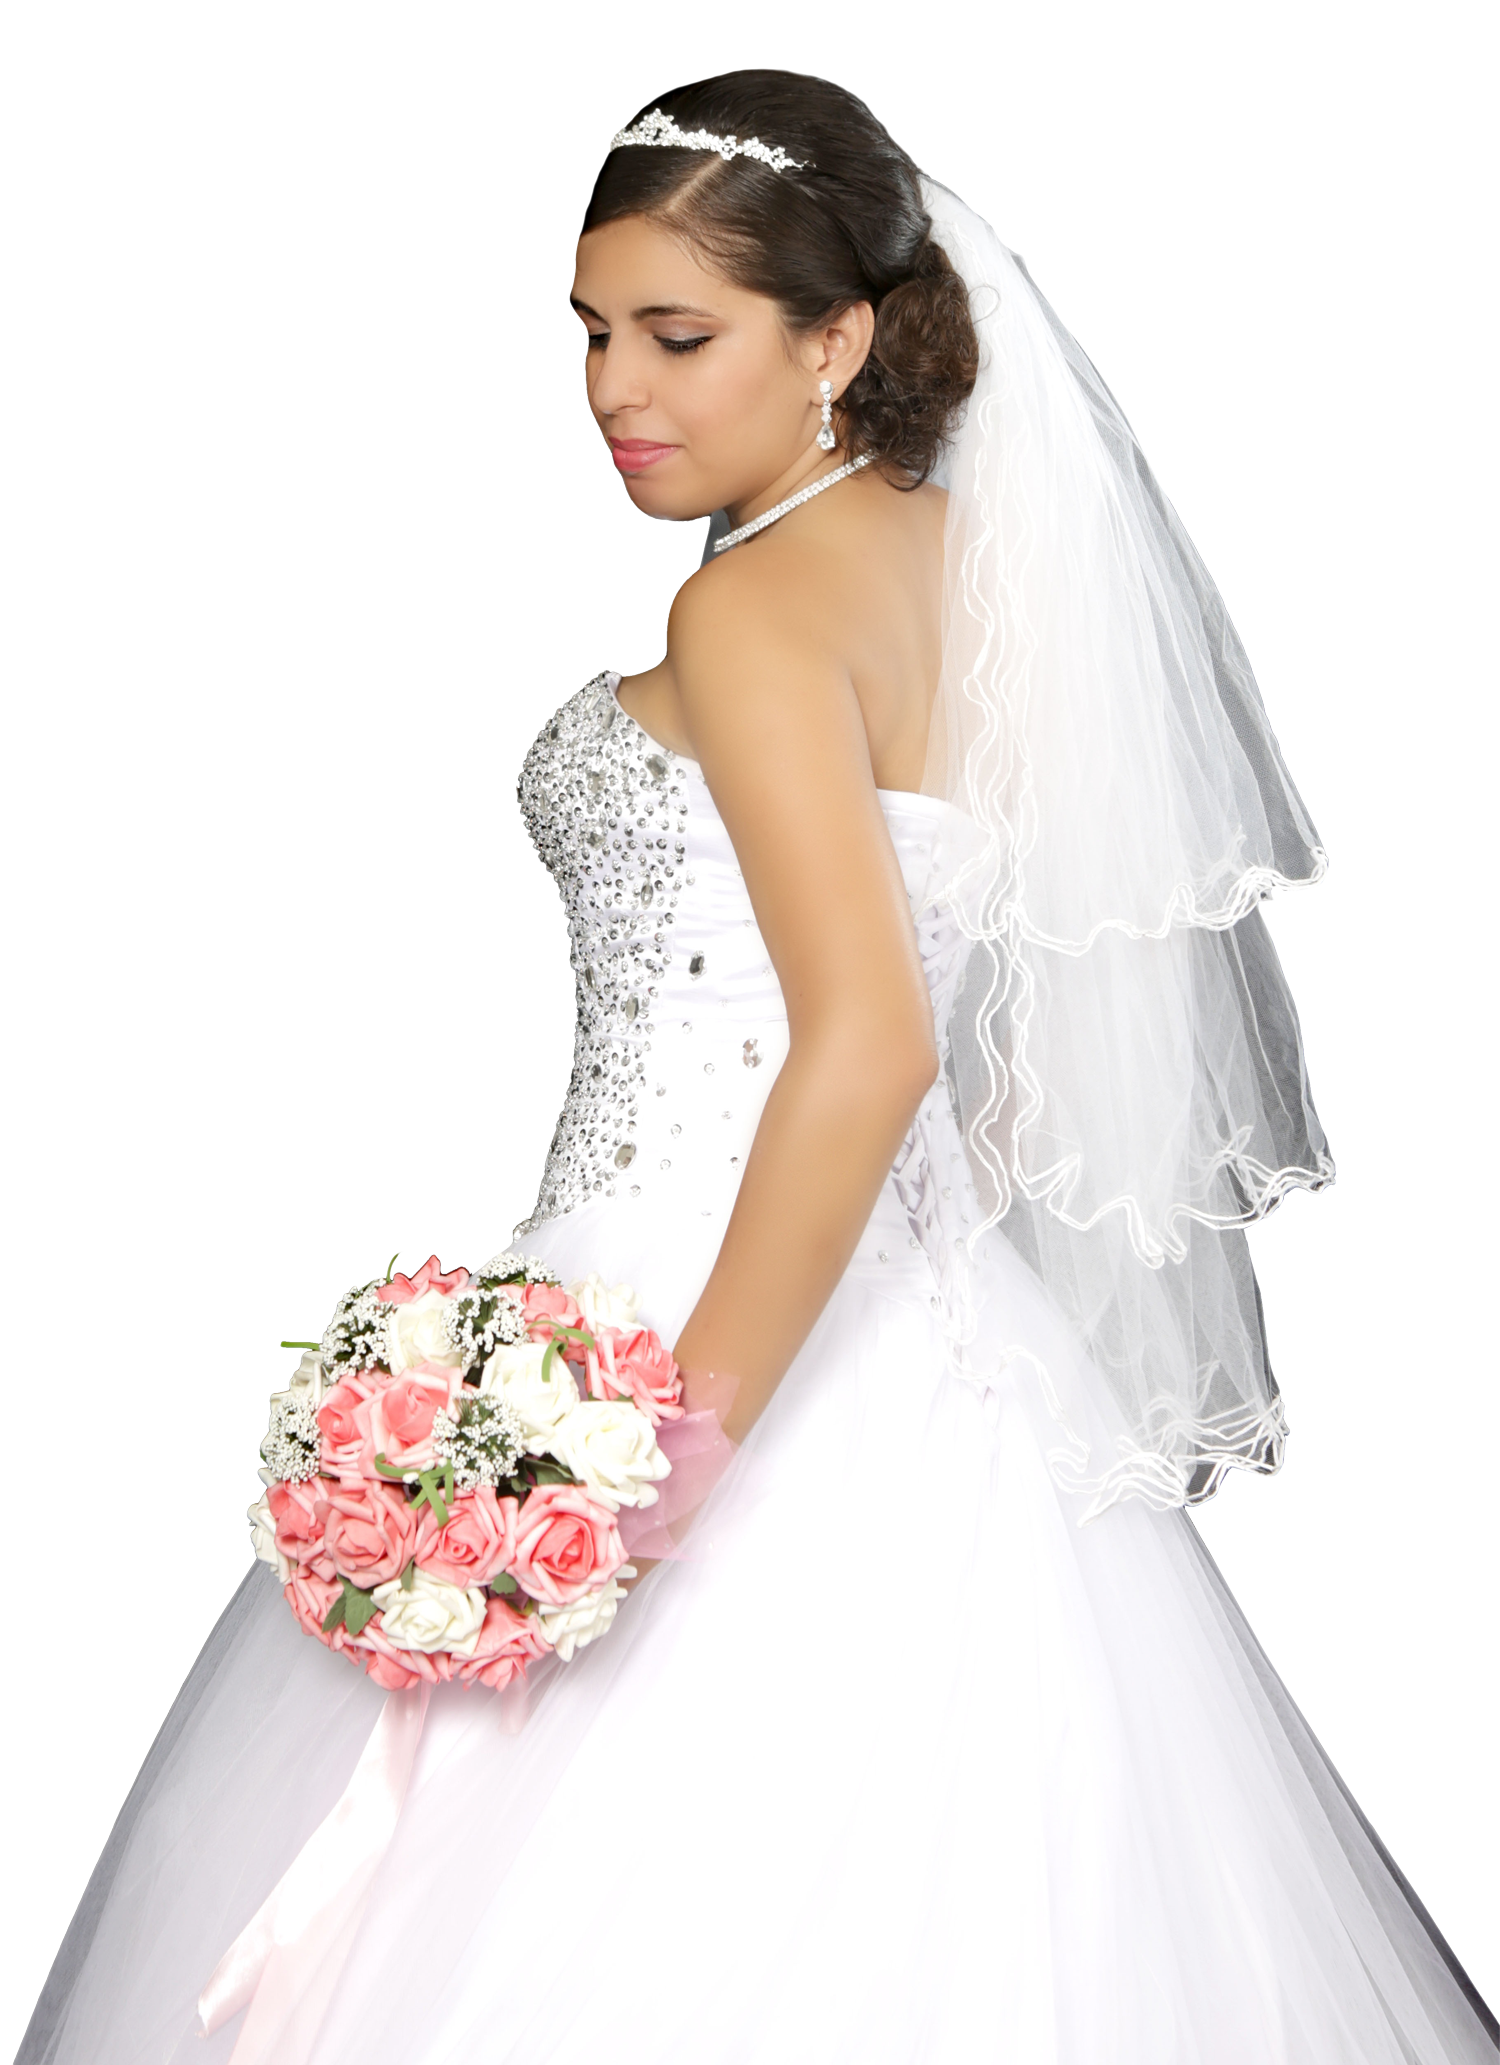 Wedding Girl PNG Transparent Image - Girl PNG